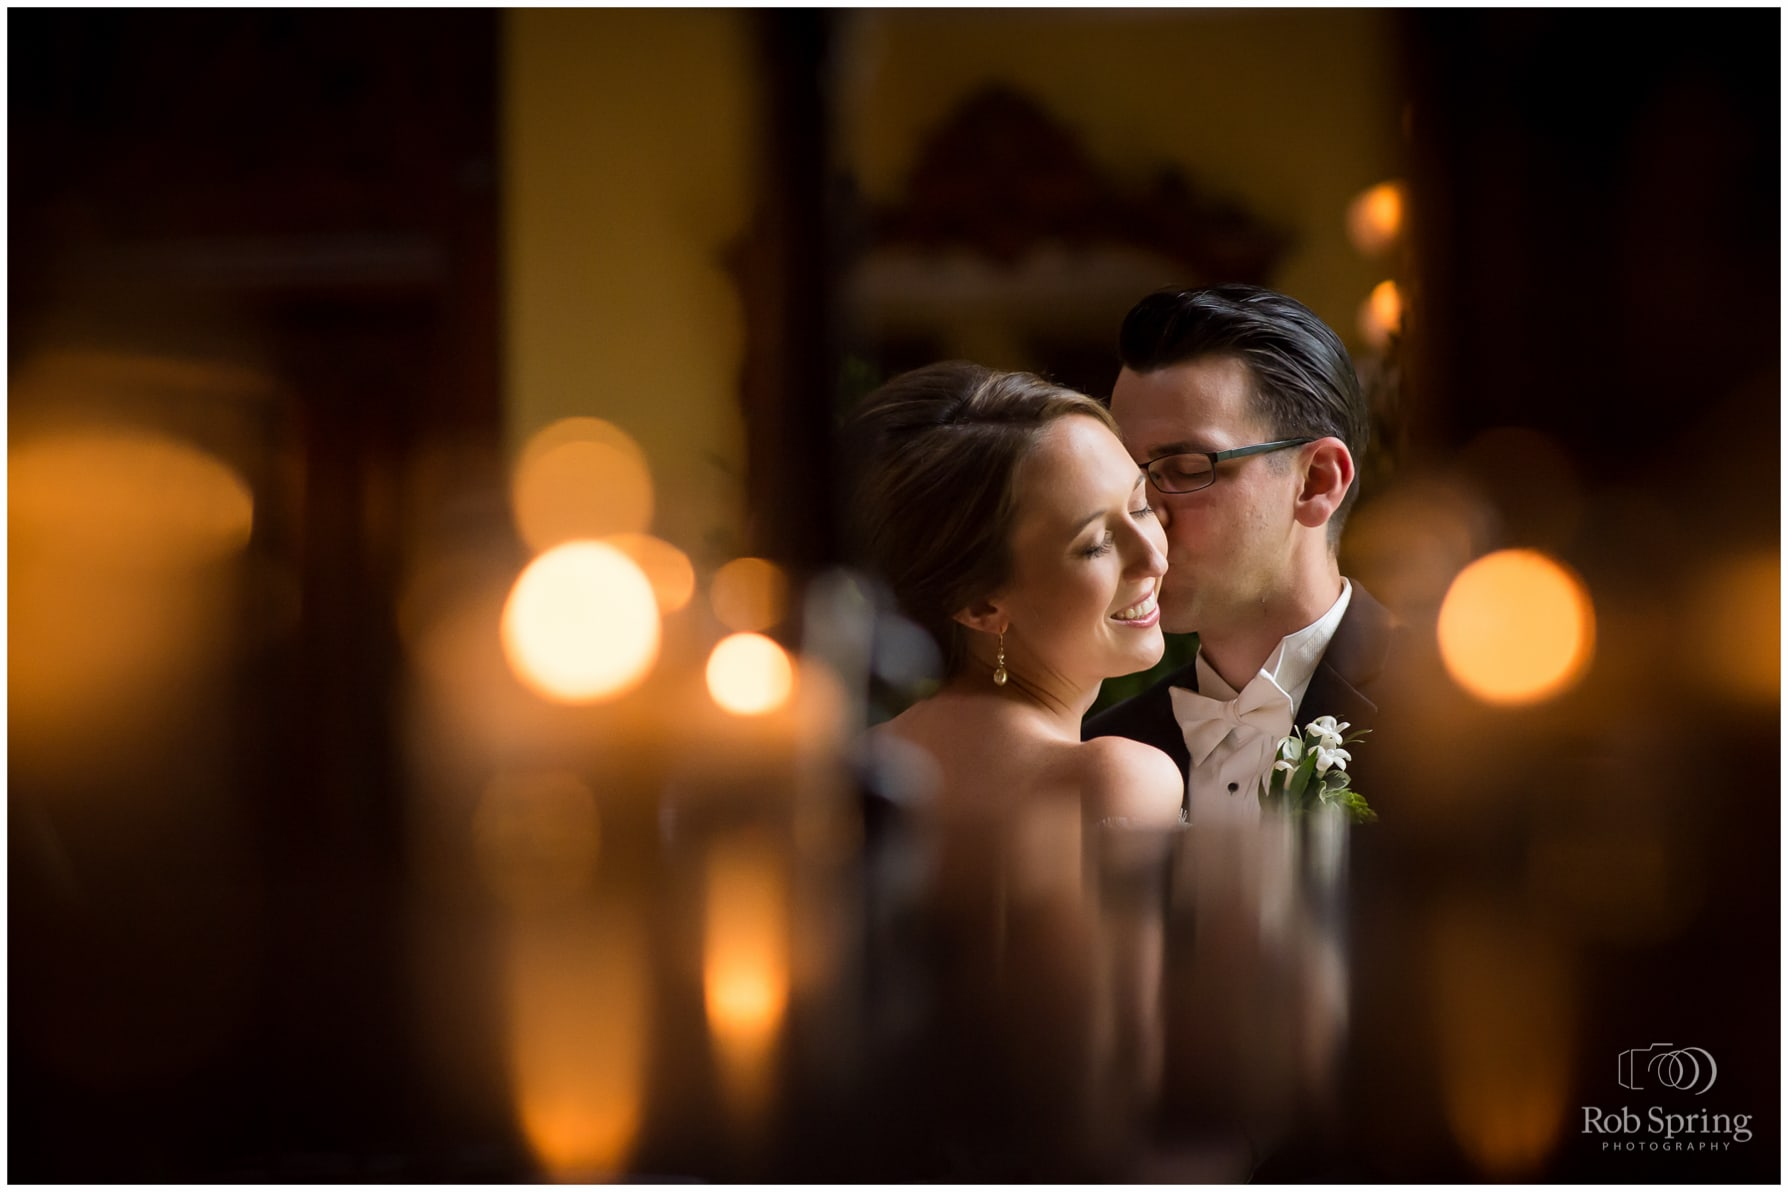 bride and groom photo with candles, bokeh, reflection, Saratoga Springs, NY Wedding photos